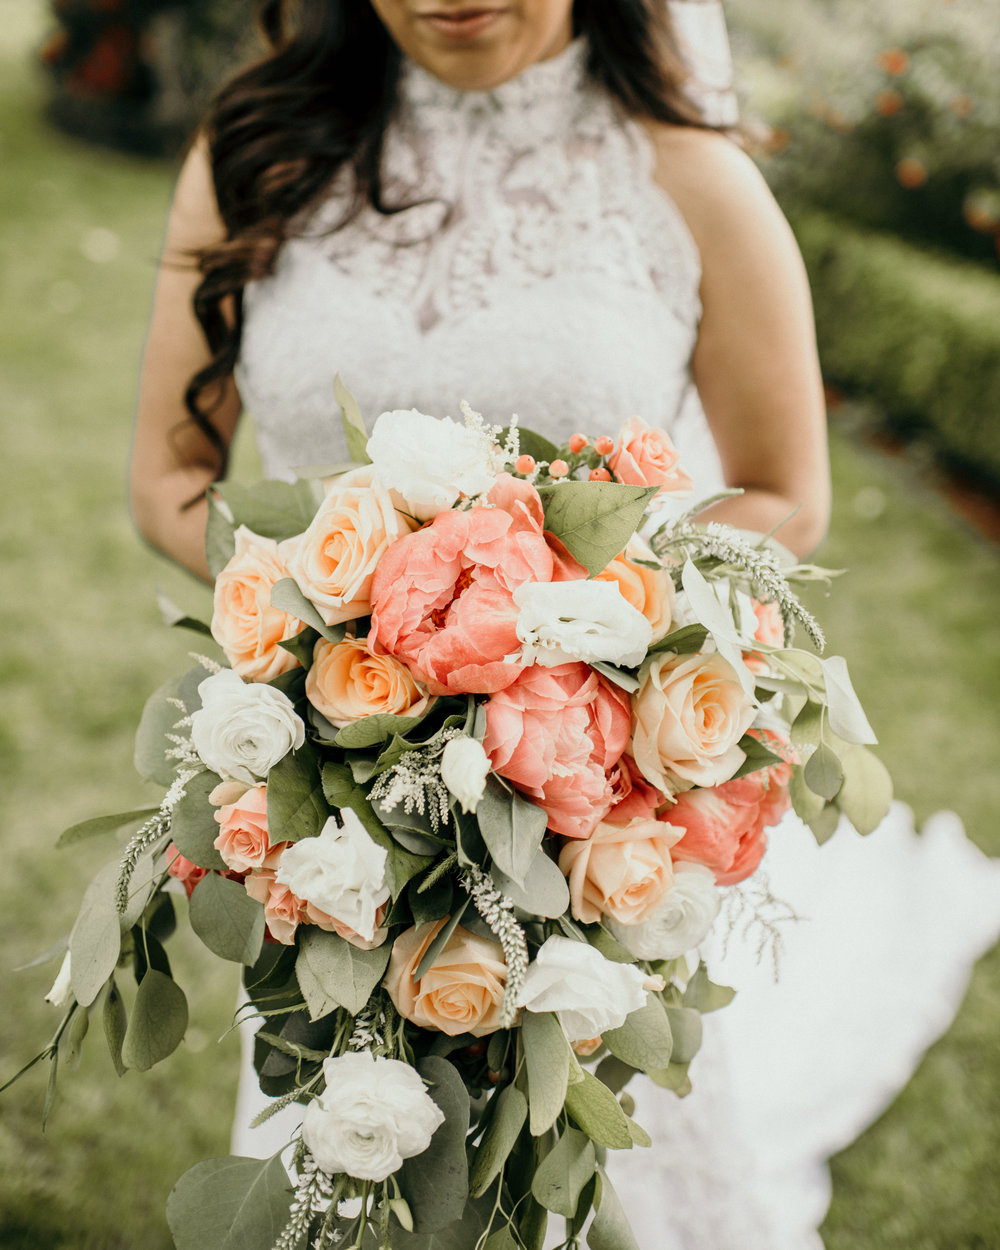 020 Spring Wedding_Garden Wedding_Montana Wedding_Missoula Wedding Photographer_Bozeman Wedding Photographer_Montana Wedding Photographer_Kelsey Lane Photography_Yoselin + Daniel Wedding-2-492.jpg